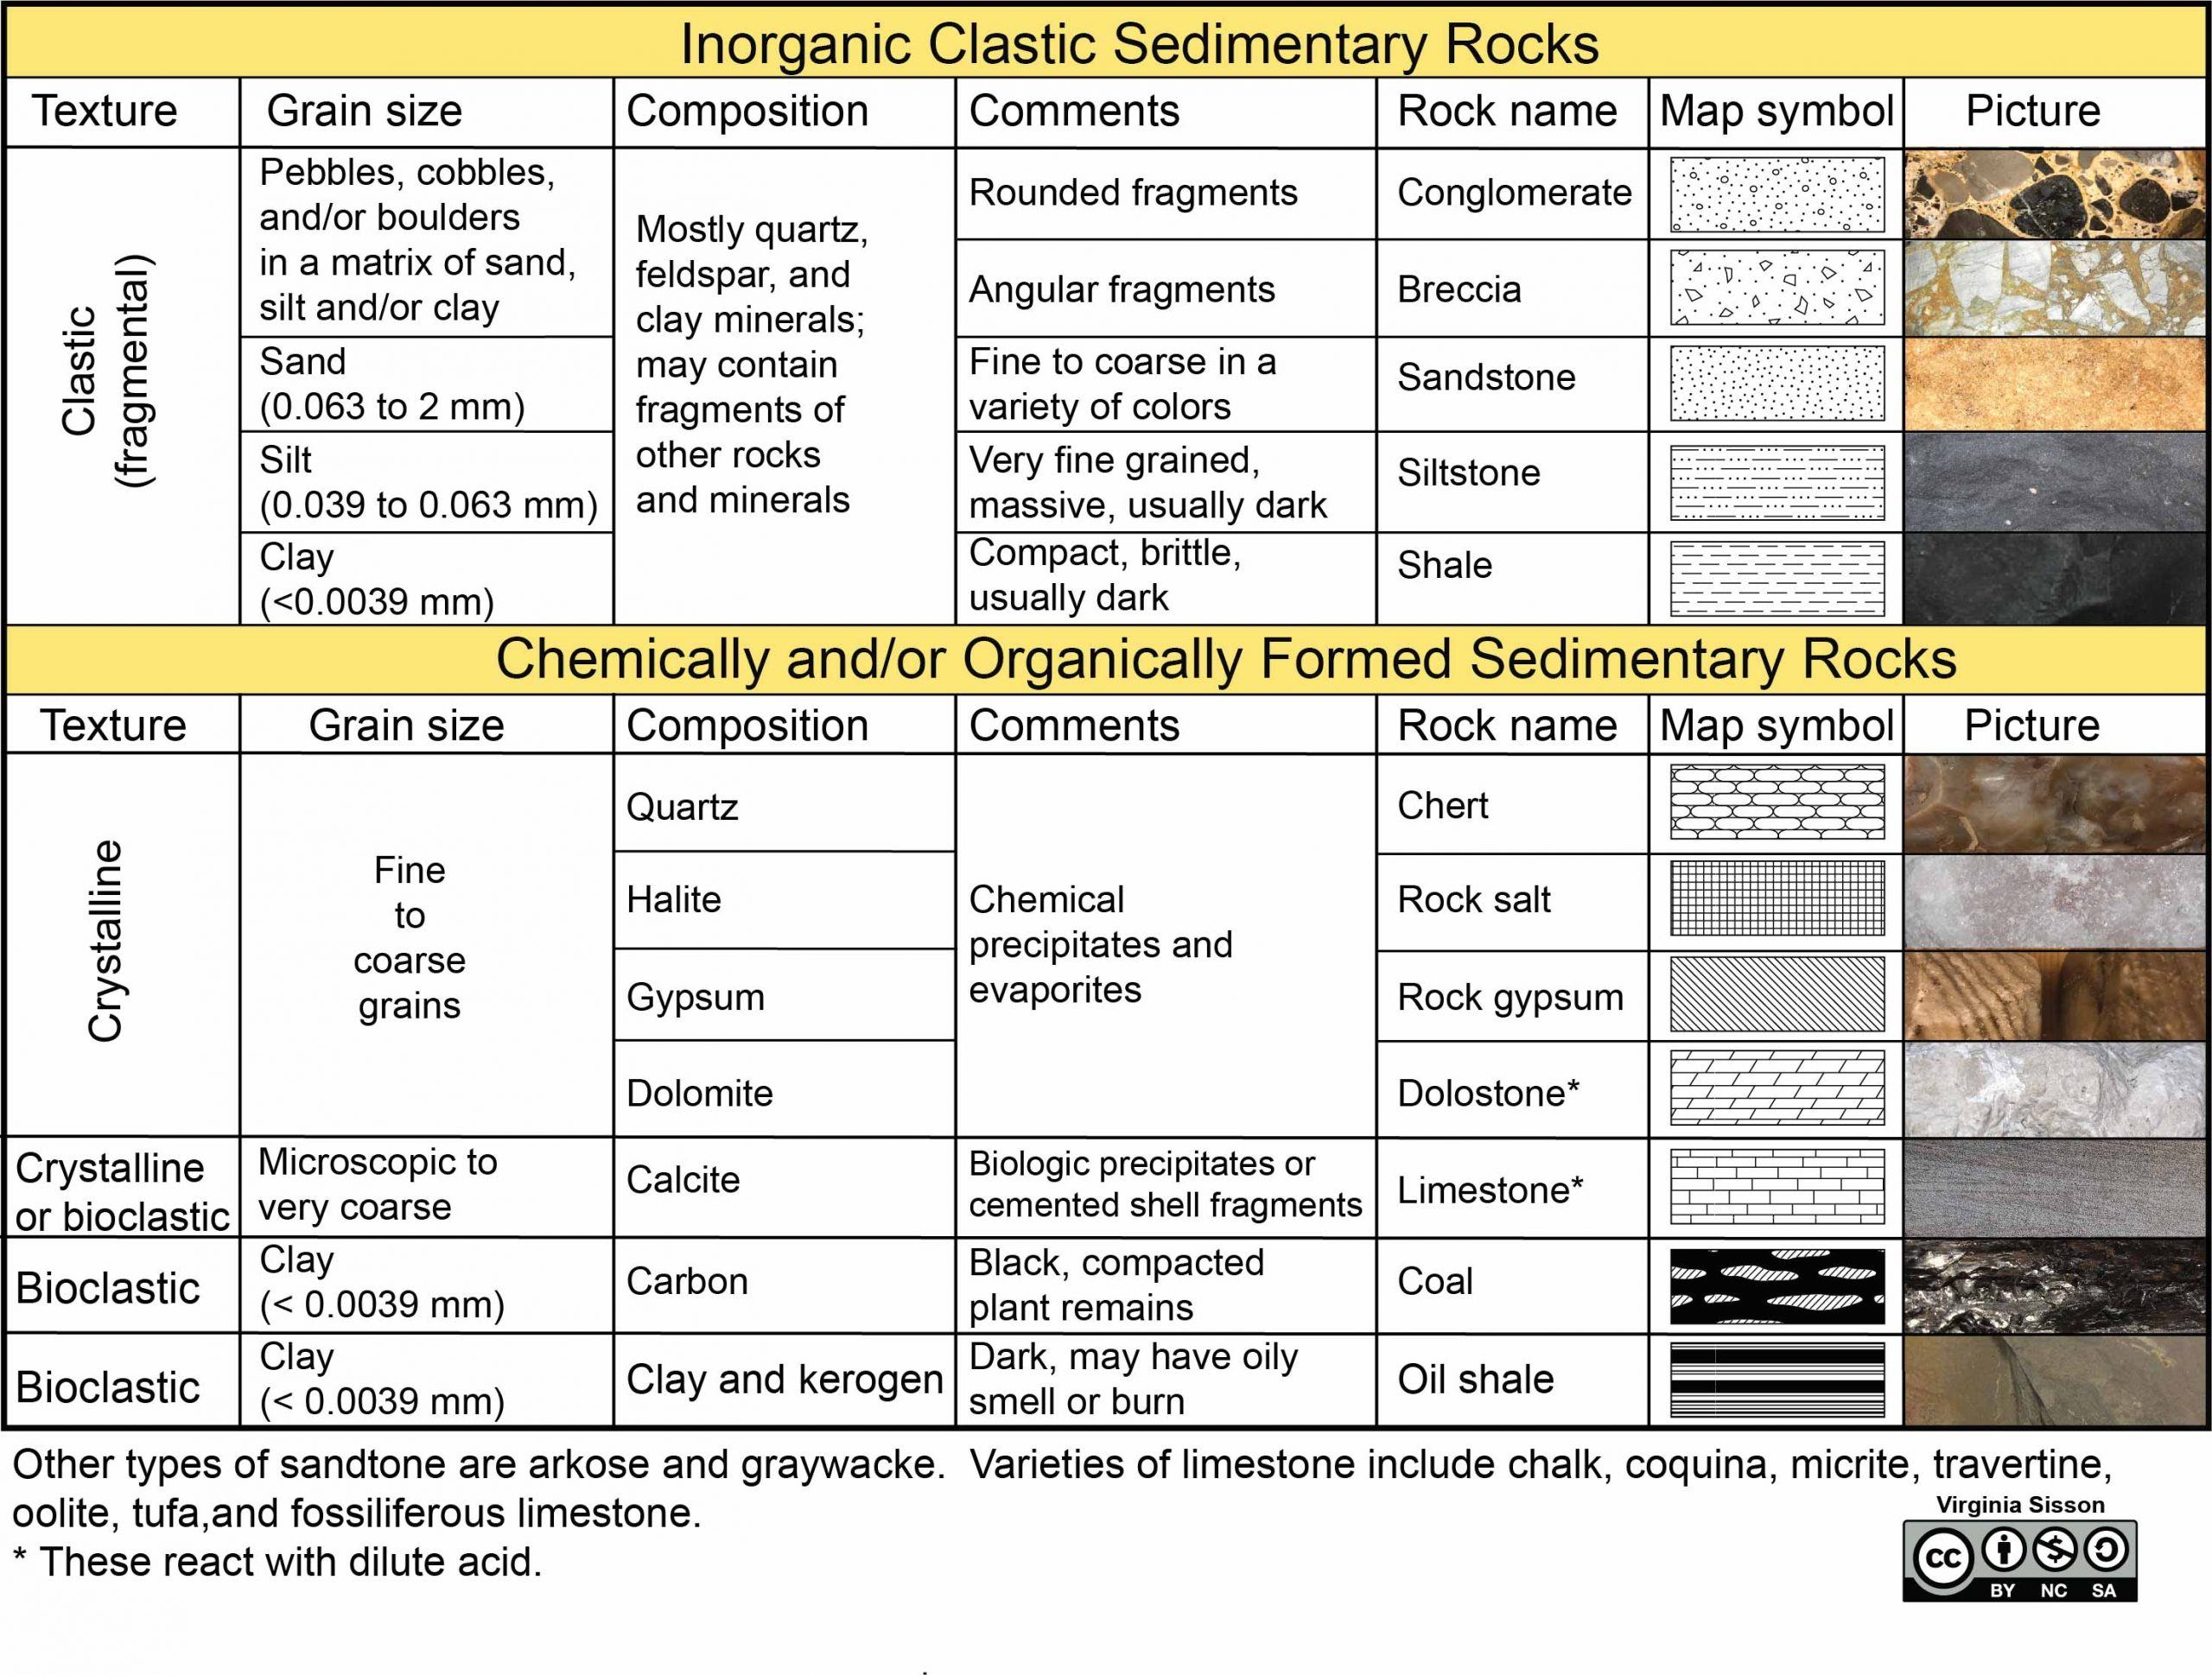 Sedimentary rock classification table. Separates inorganic clastic rocks from chemically and organically formed rocks.